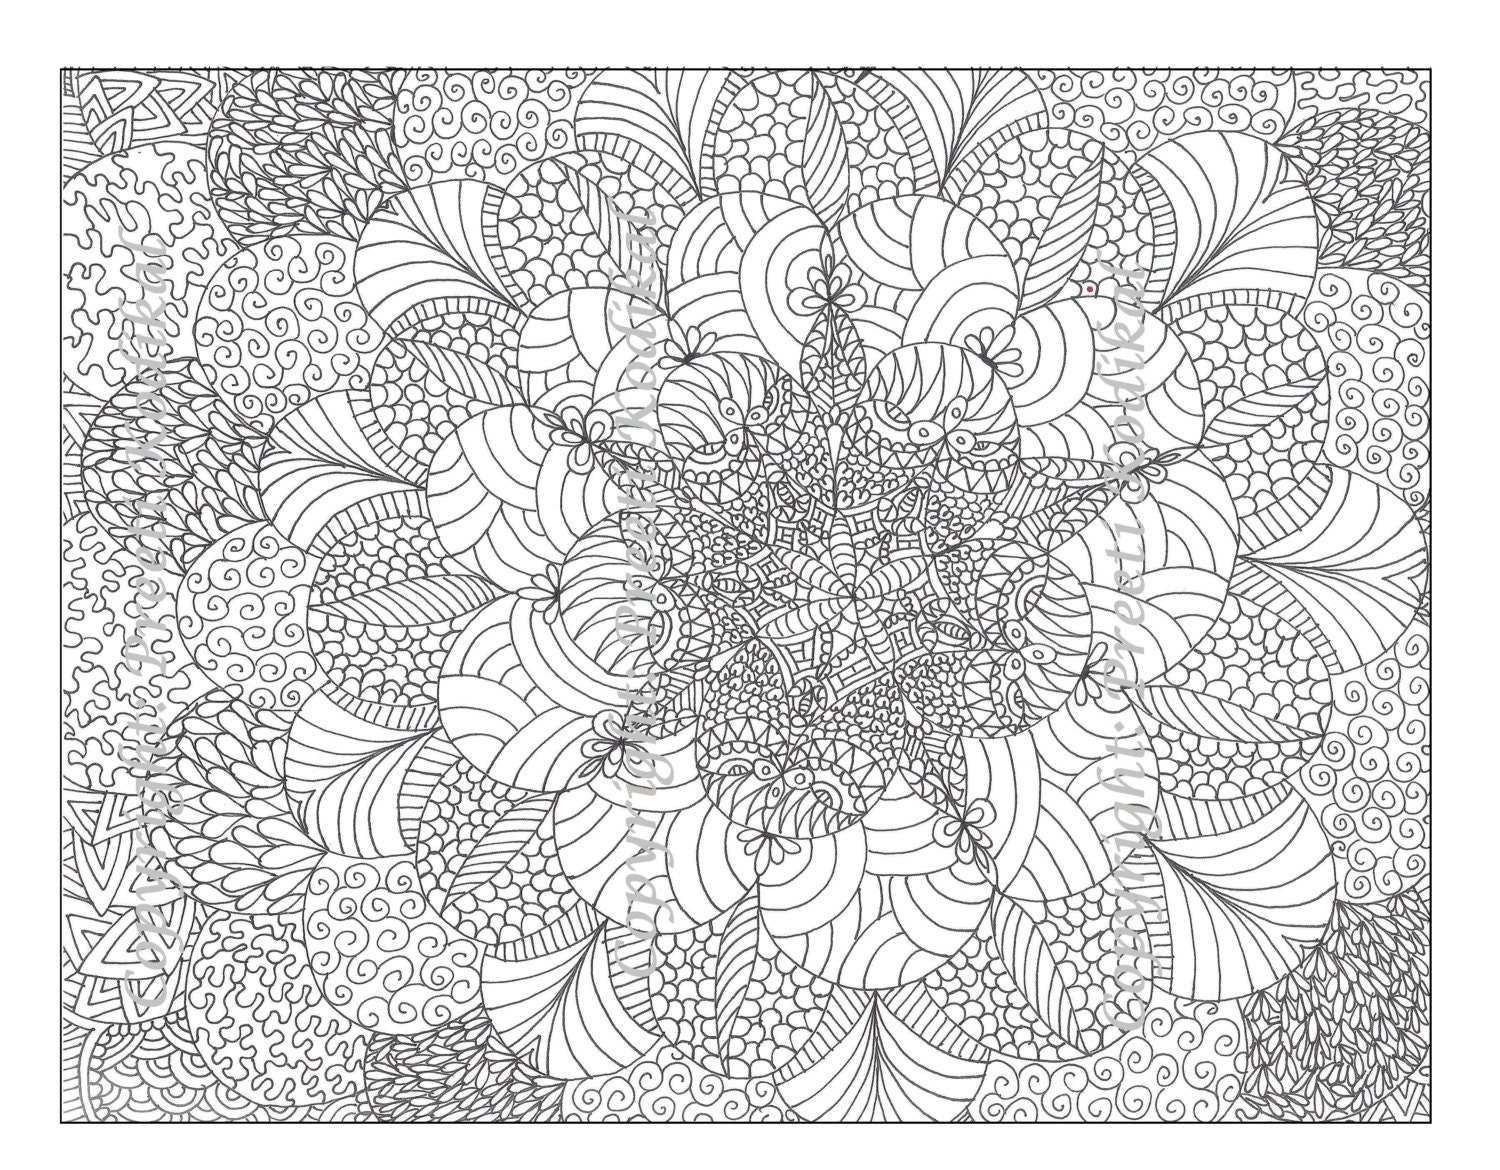 Coloring Pages Patterns And Designs : Cool design patterns coloring pages images pictures becuo